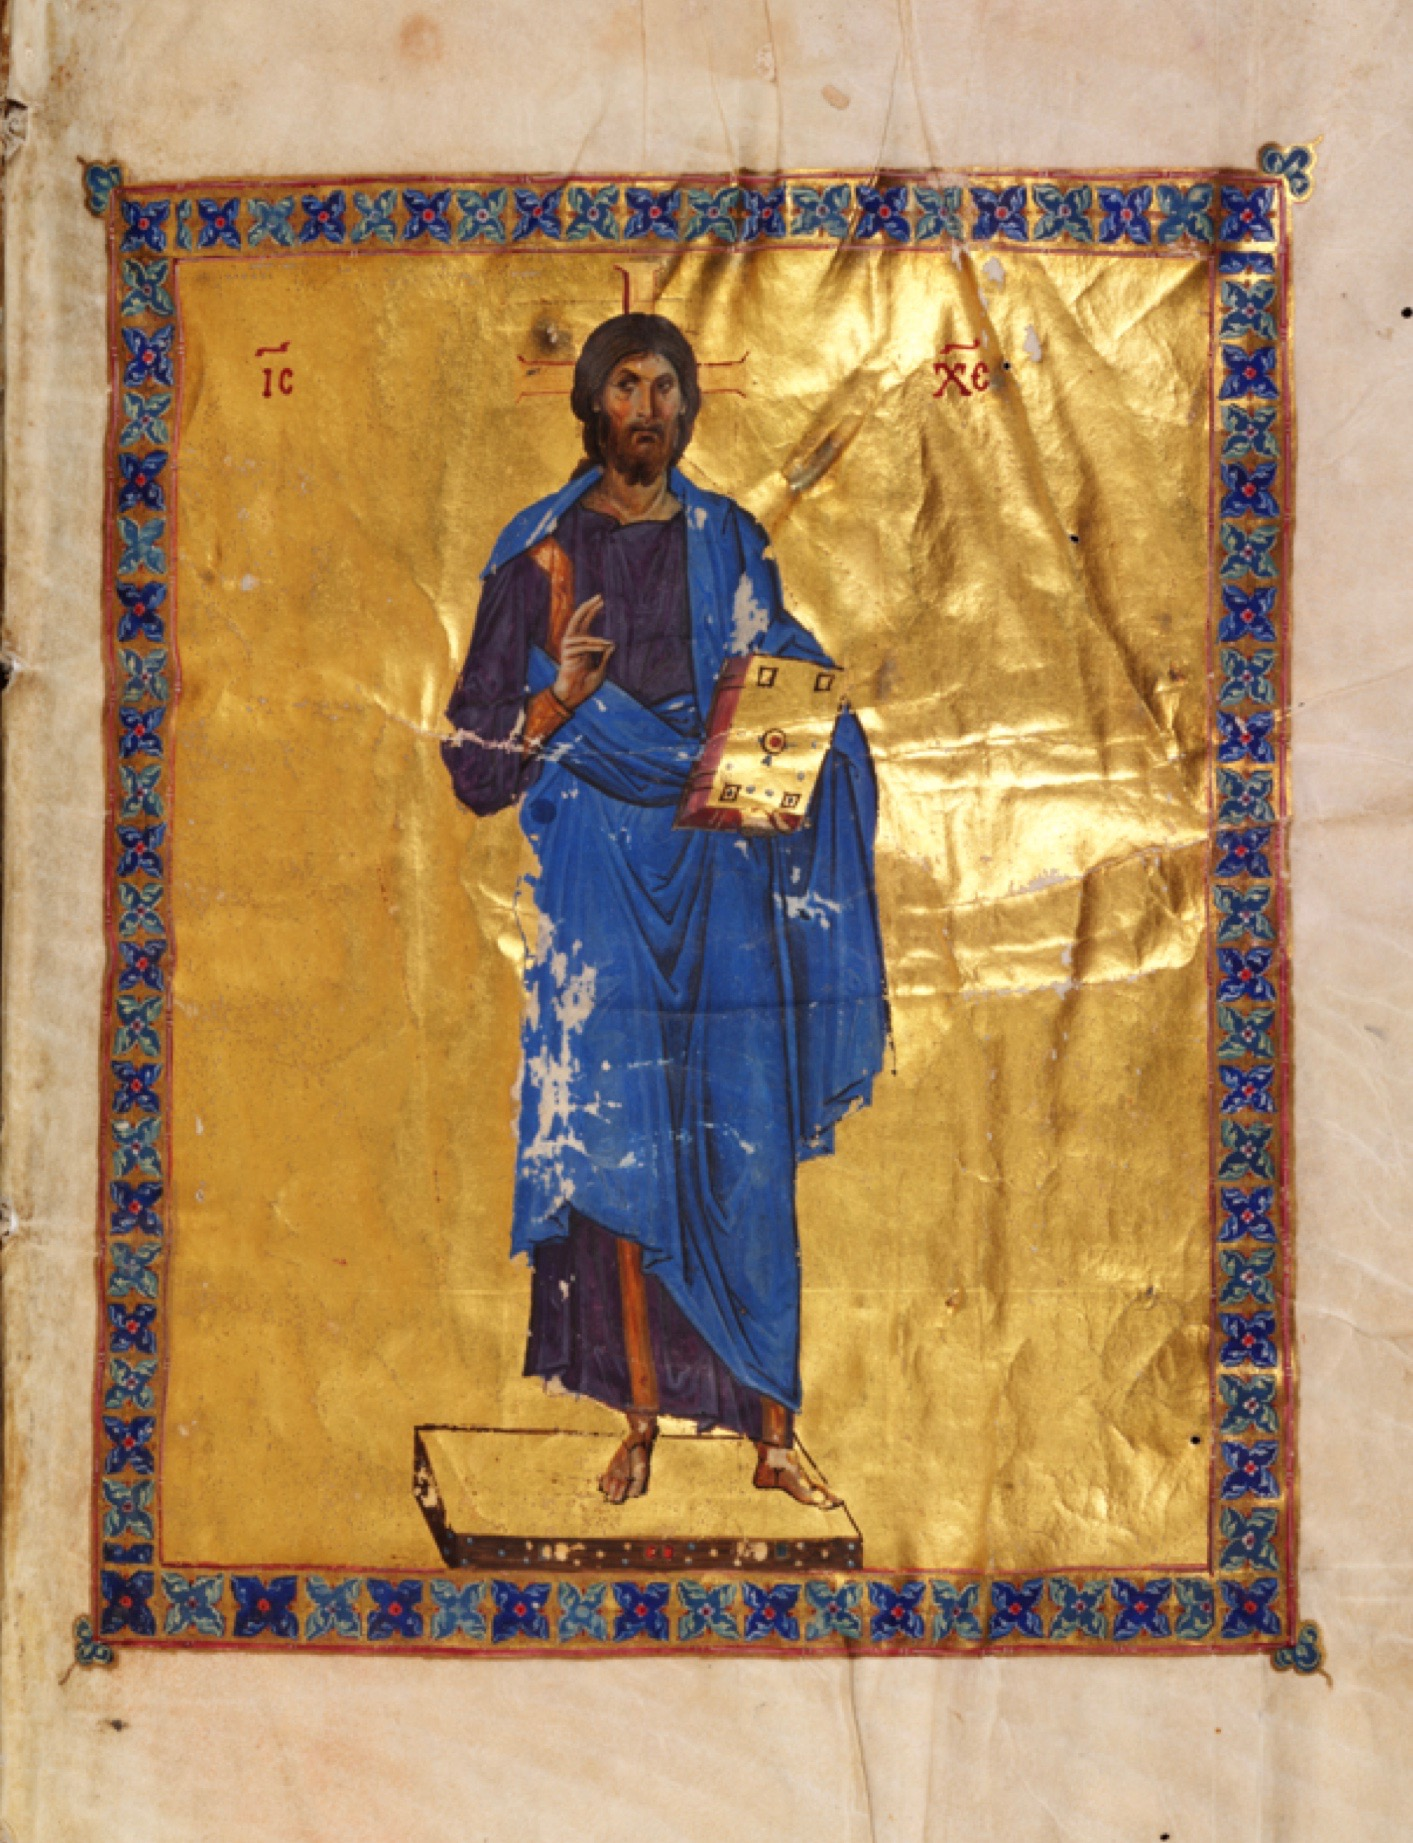 On a background of burnished gold and surrounded by a gem-like border, Christ Pantocrator is rendered in translucent colors with great subtlety in Sinai Codex Theodosianus.